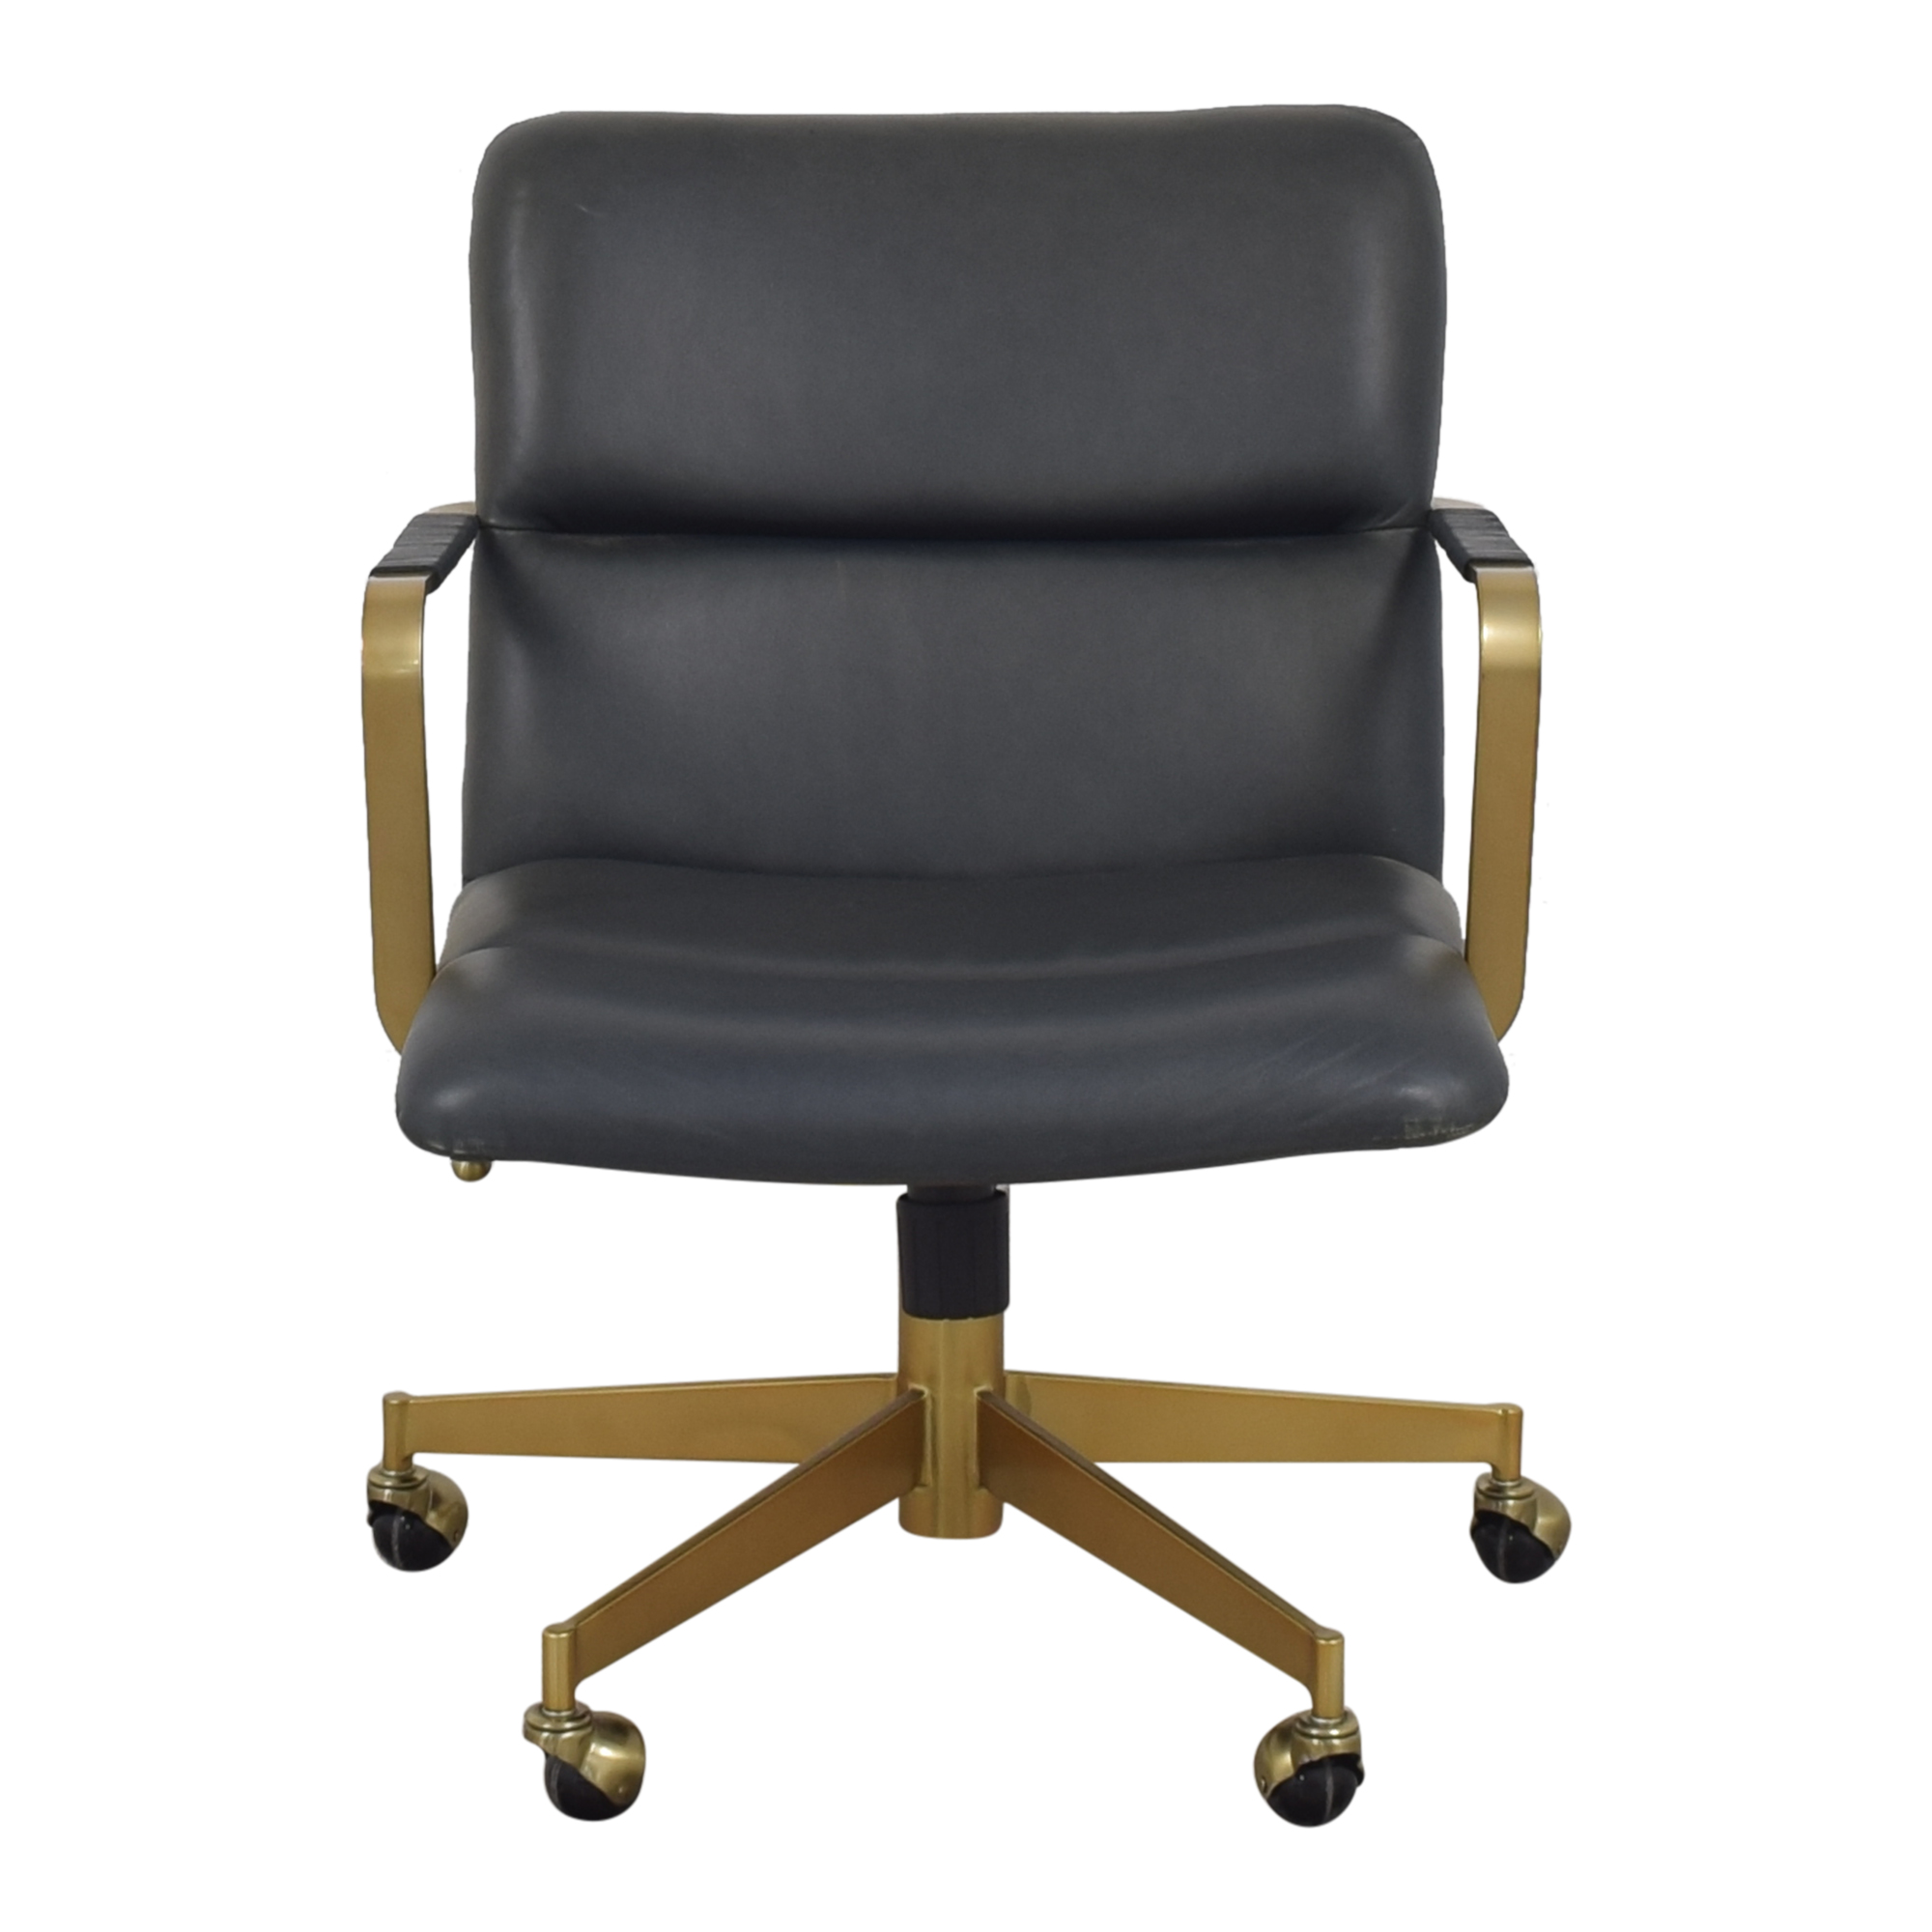 West Elm West Elm Cooper Mid-Century Swivel Office Chair dimensions